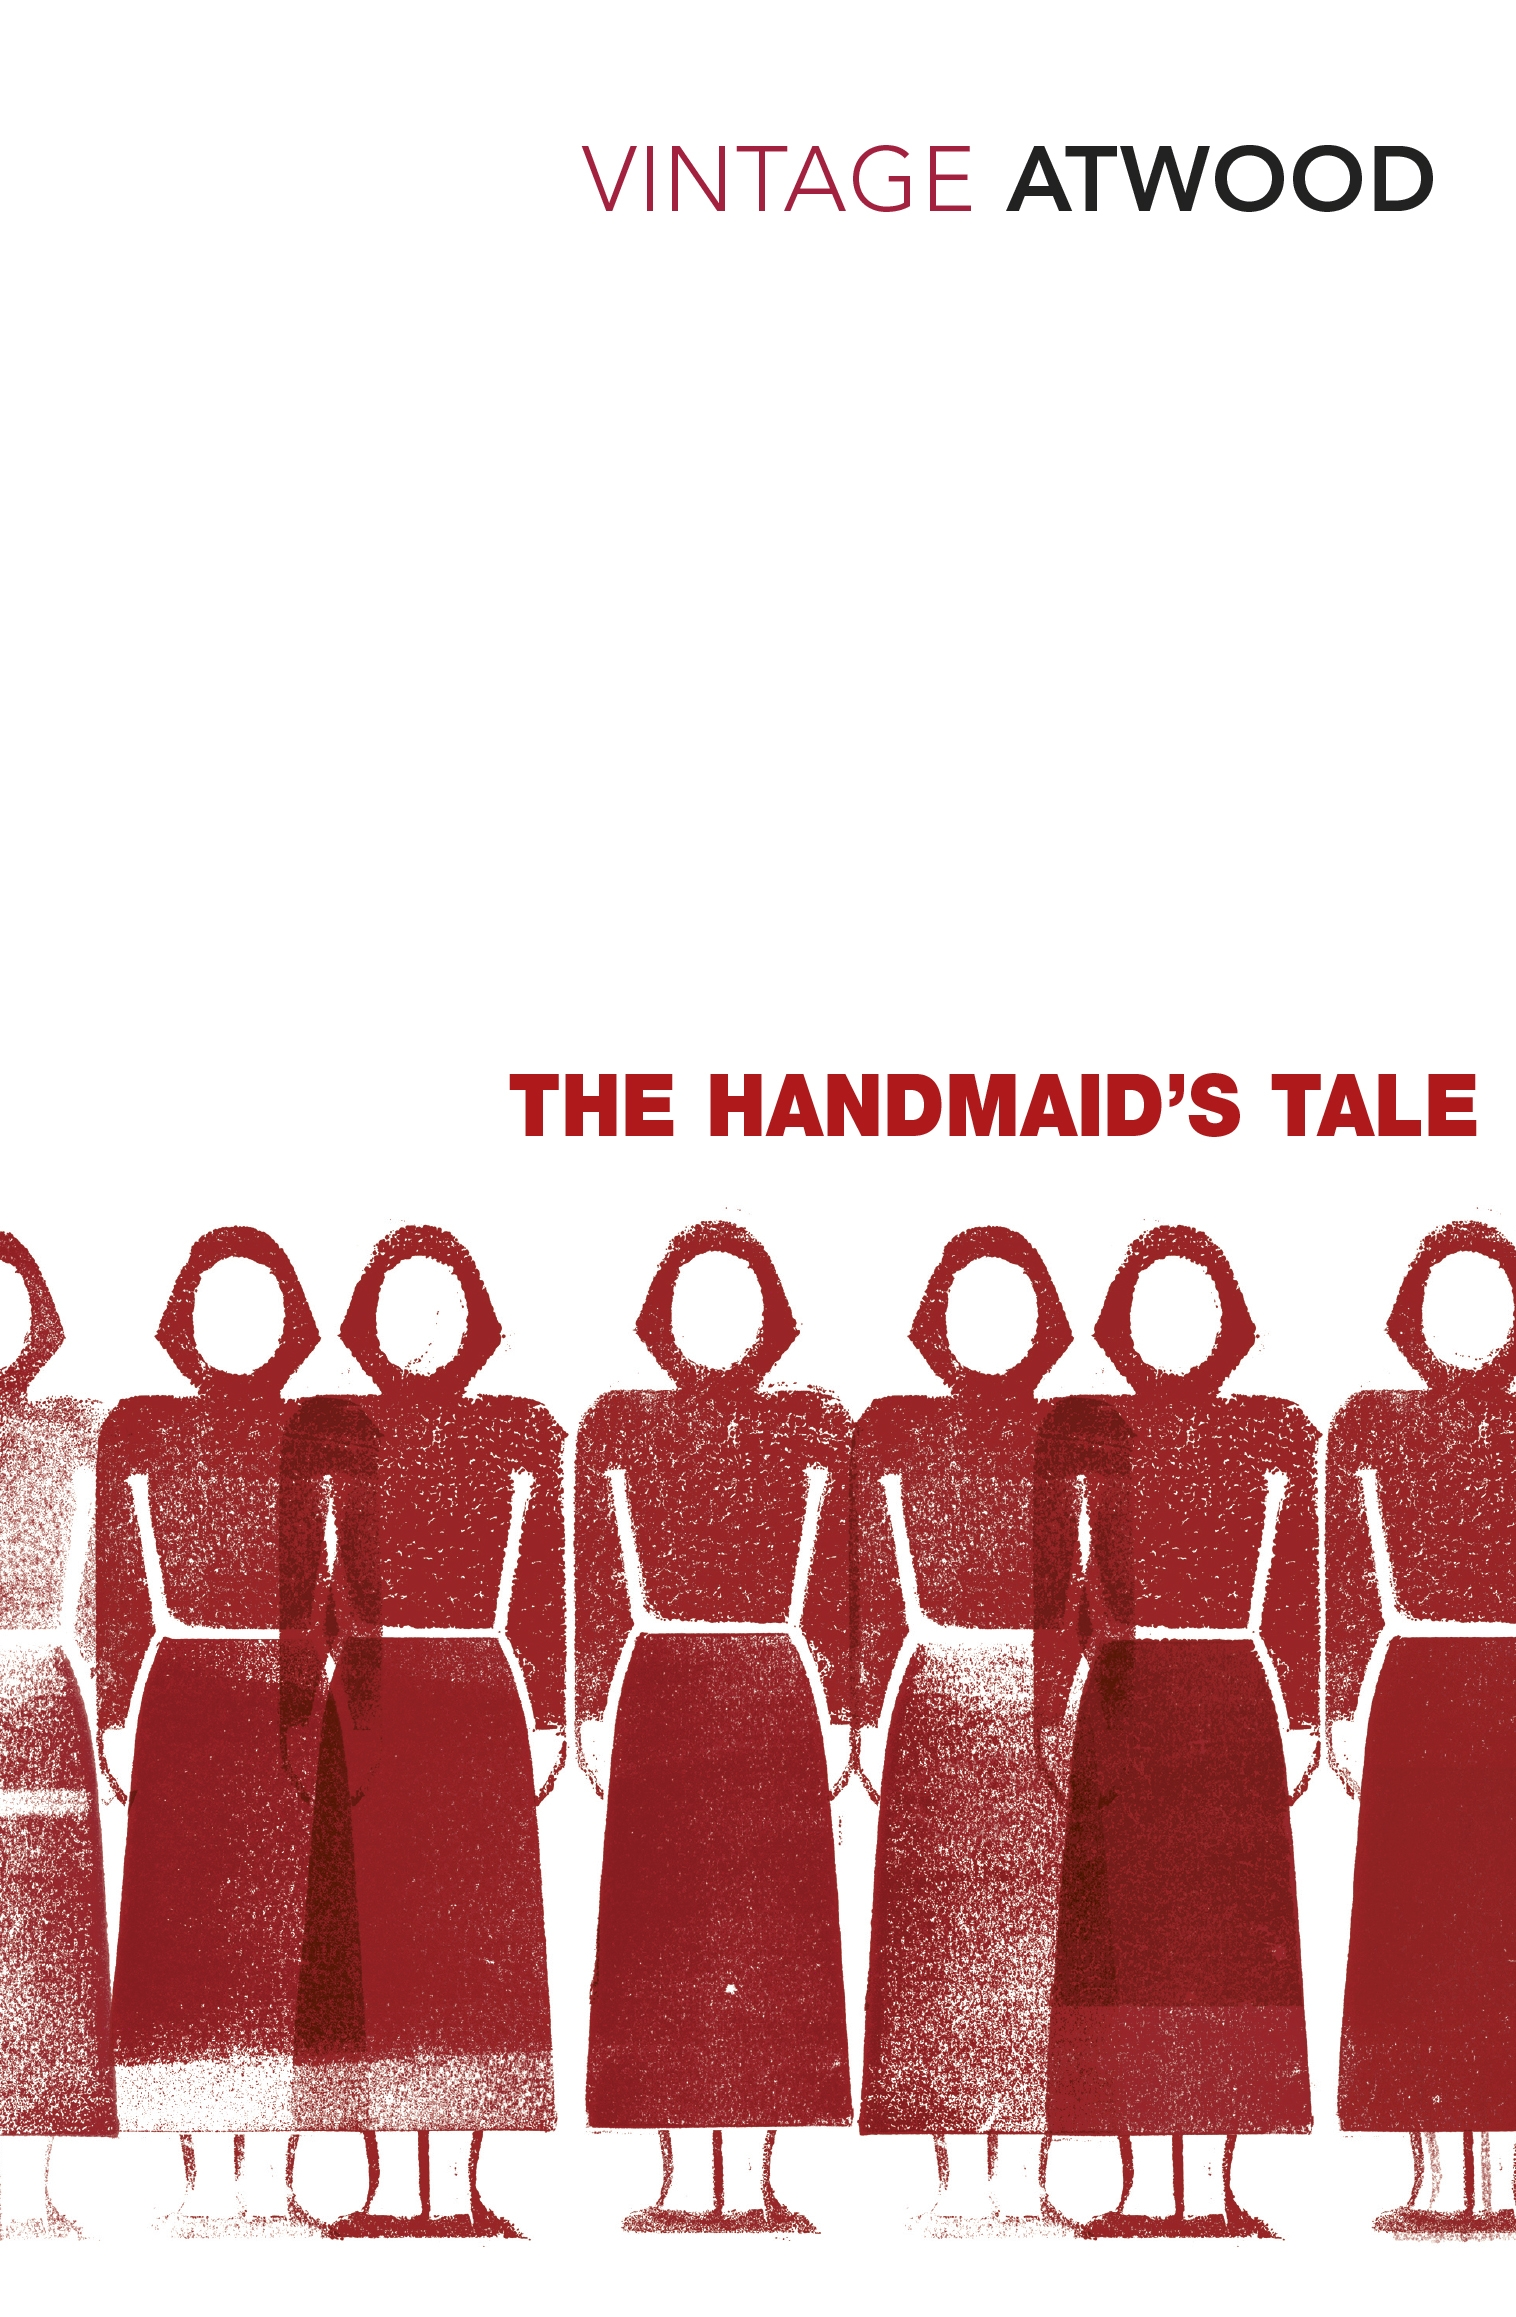 an analysis of the handmaids tale a parable of womens role The characters of women in the handmaid's tale and the bell jar 1504 words 7 pages women in the handmaid's tale and the bell jar sylvia plath's renowned.